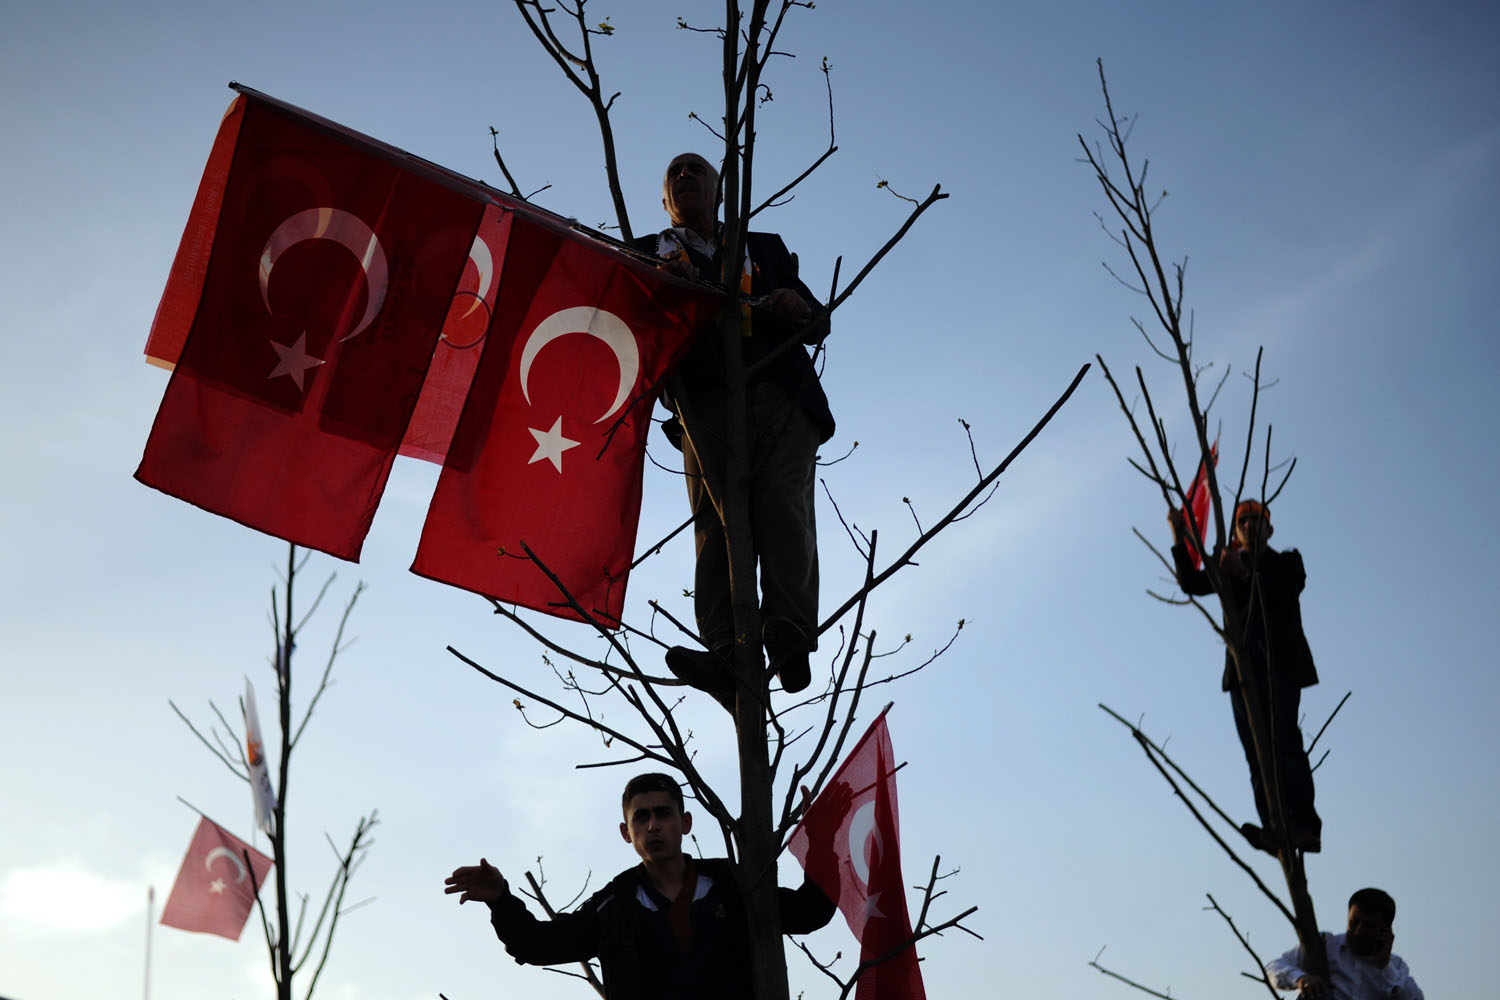 Mar. 23, 2014. Justice and Development Party (AKP) supporters wait on a tree during a rally in Istanbul. Prime Minister Recep Tayyip Erdogan rallied hundreds of thousands of supporters on Sunday, dismissing accusations of intolerance by Western and domestic critics.